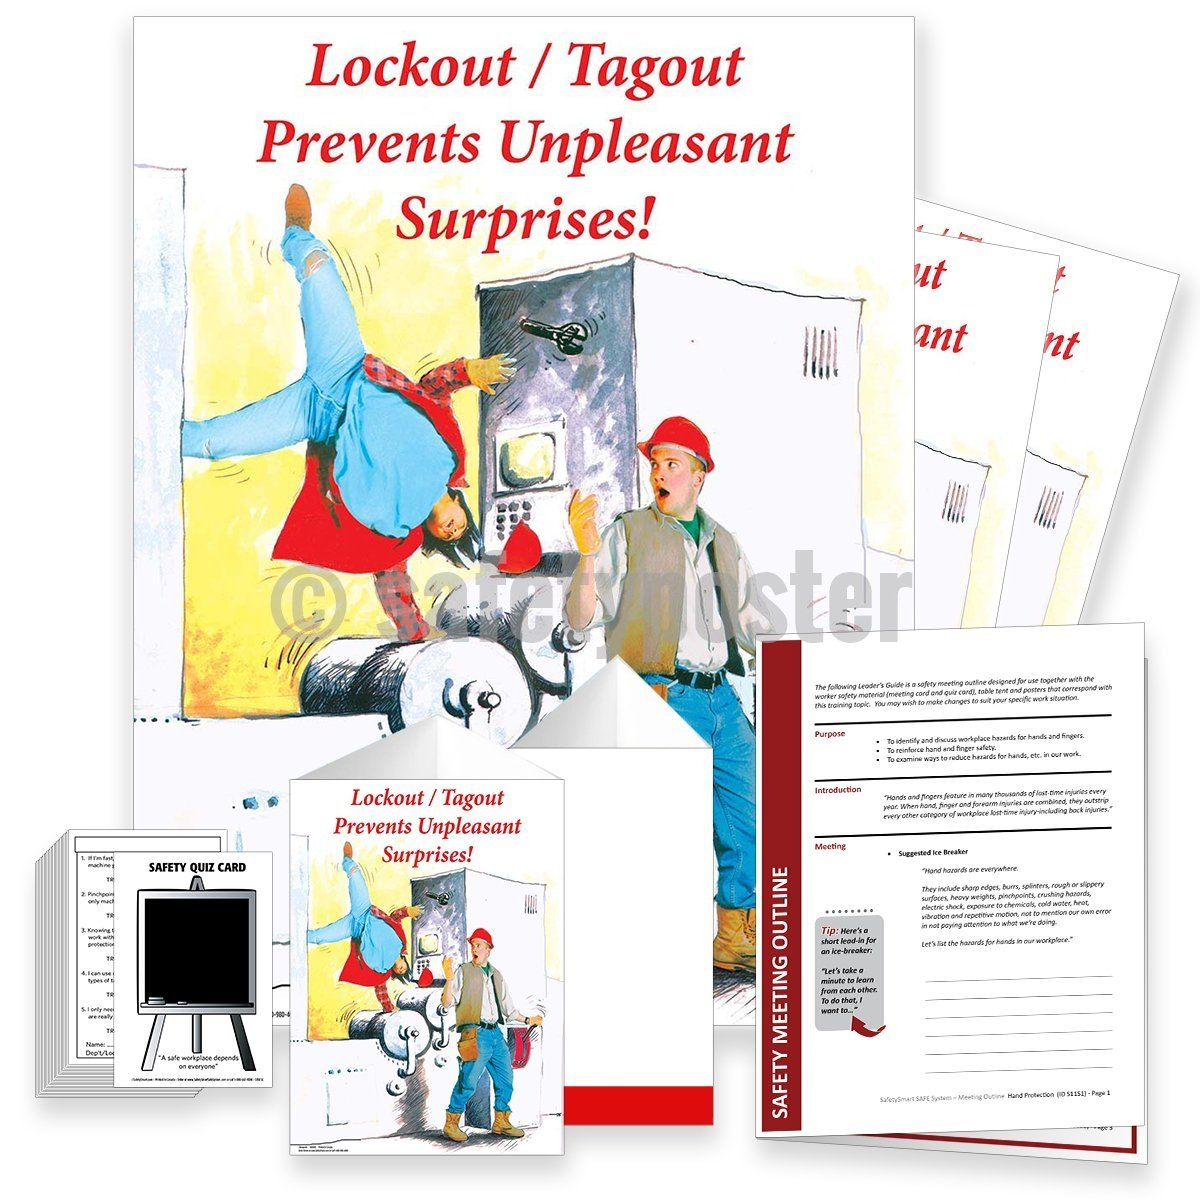 Safety Meeting Kit - Lockout Tagout Prevents Unpleasant Surprises Kits